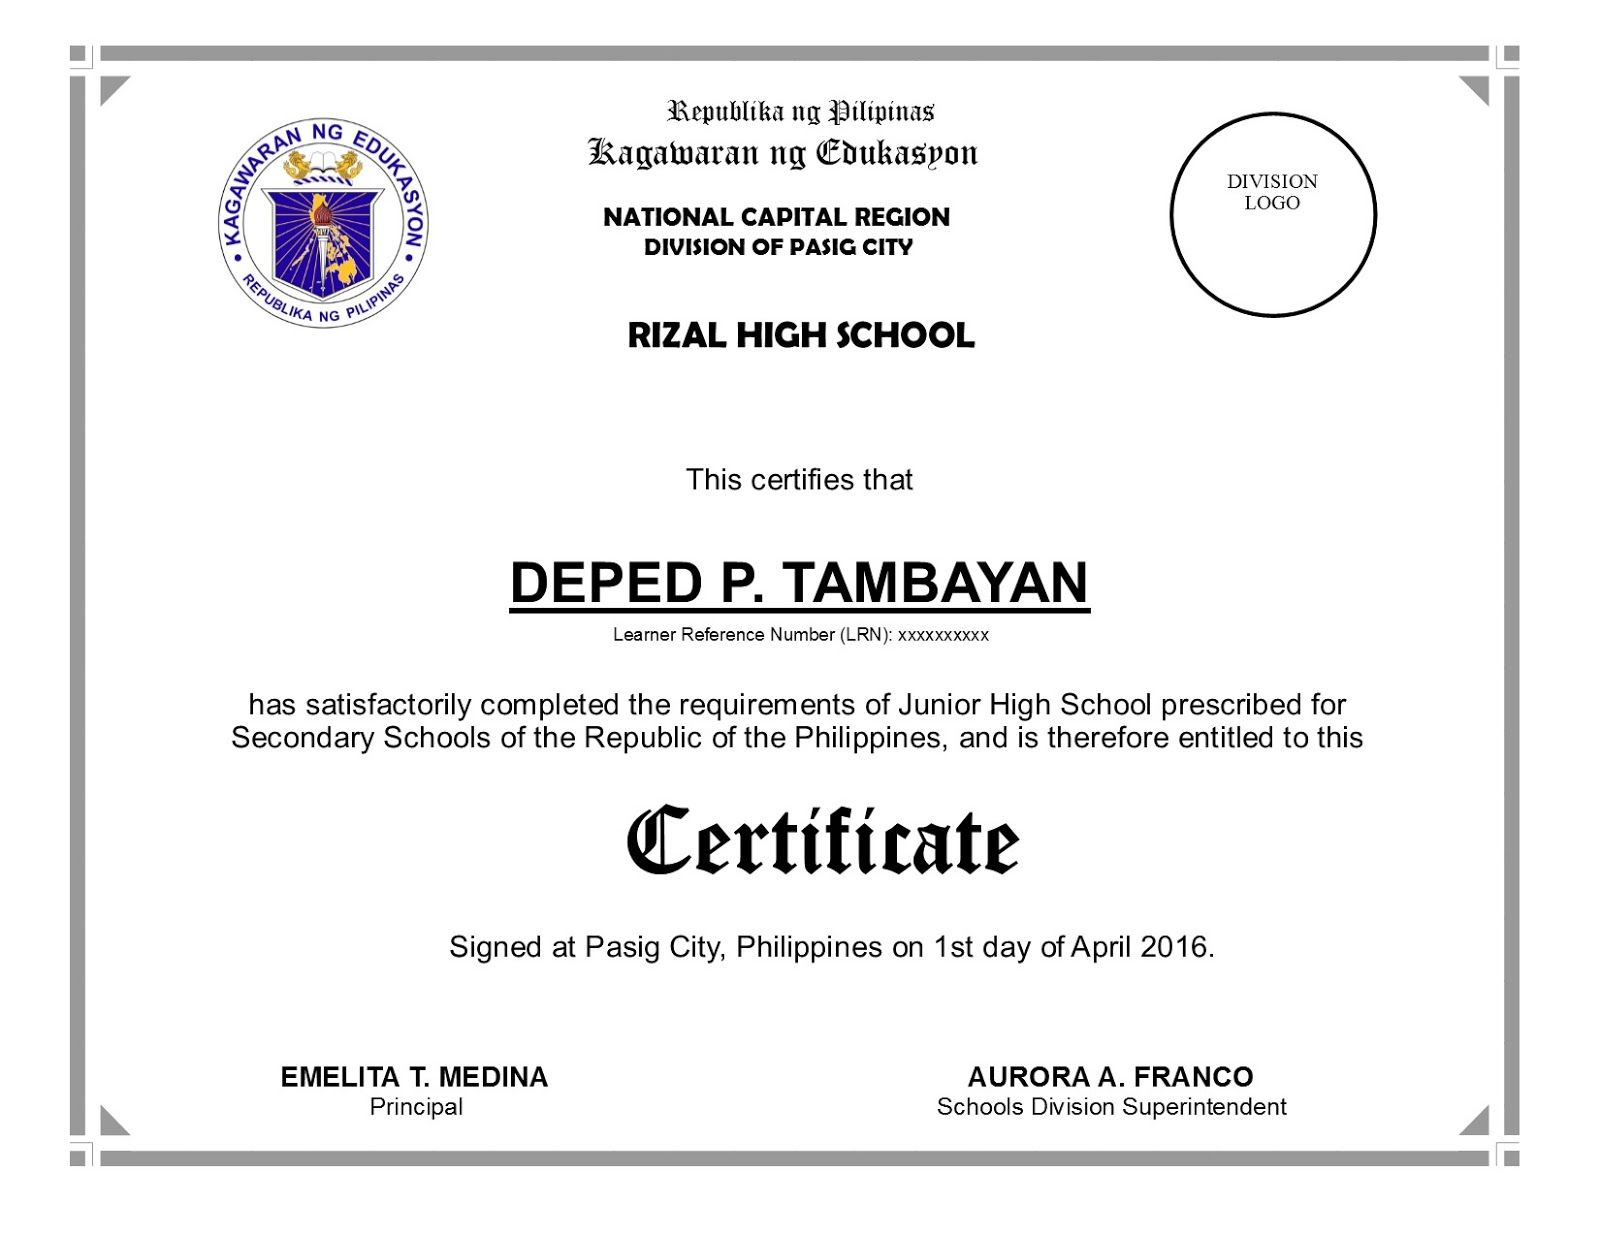 Deped diploma sample wordings yahoo image search results deped diploma sample wordings yahoo image search results yadclub Image collections